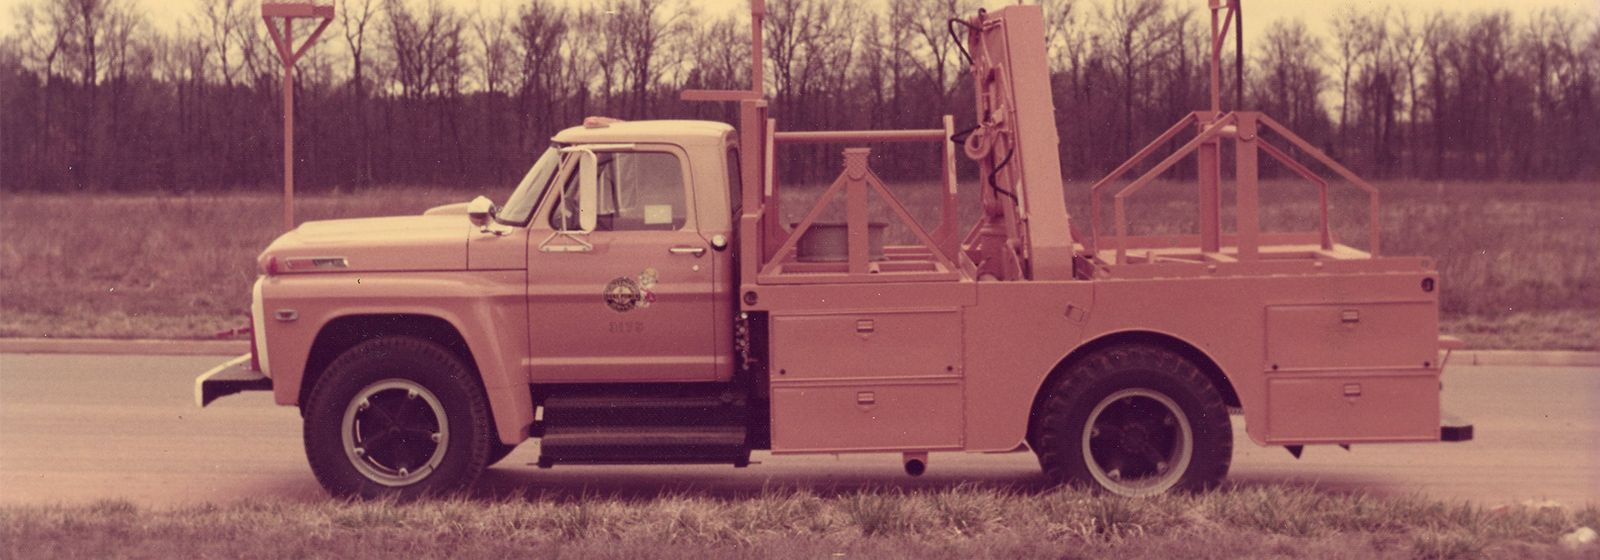 Retro: What do you know about these trucks?